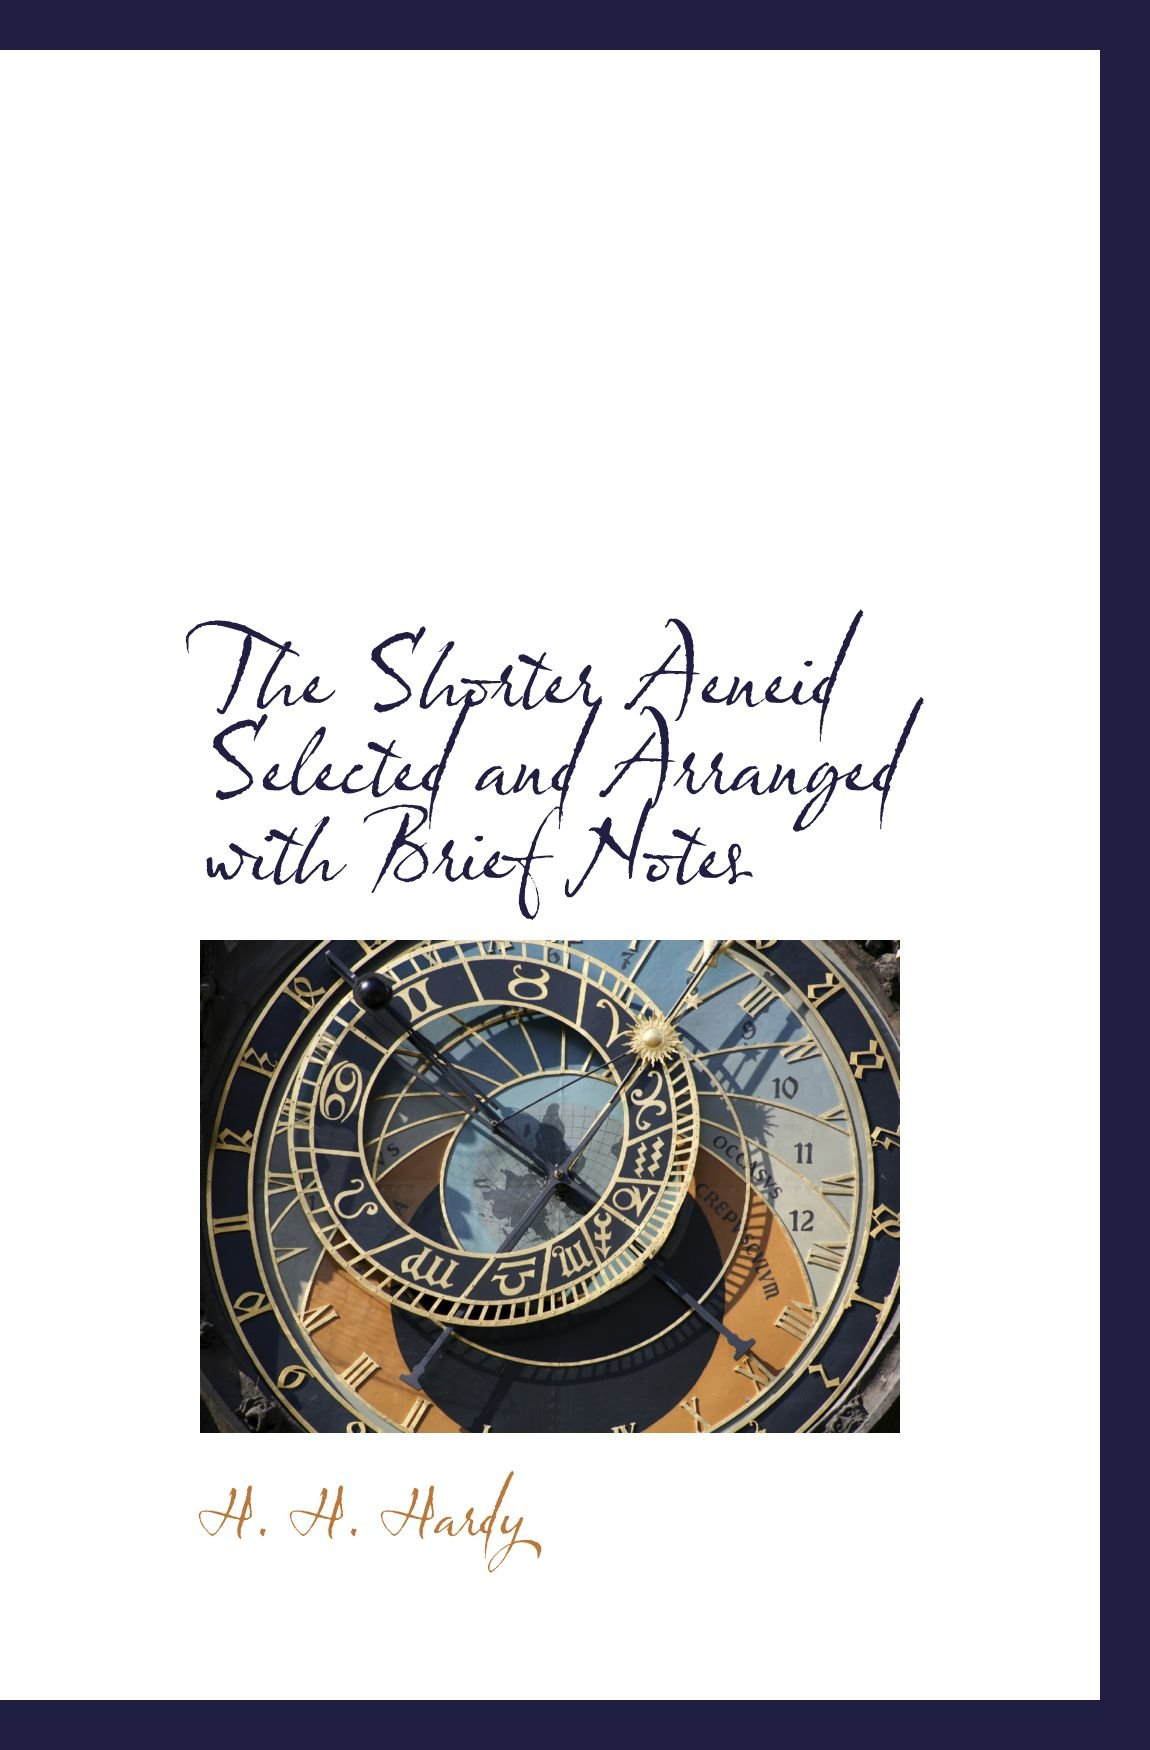 Download The Shorter Aeneid Selected and Arranged with Brief Notes (Latin Edition) pdf